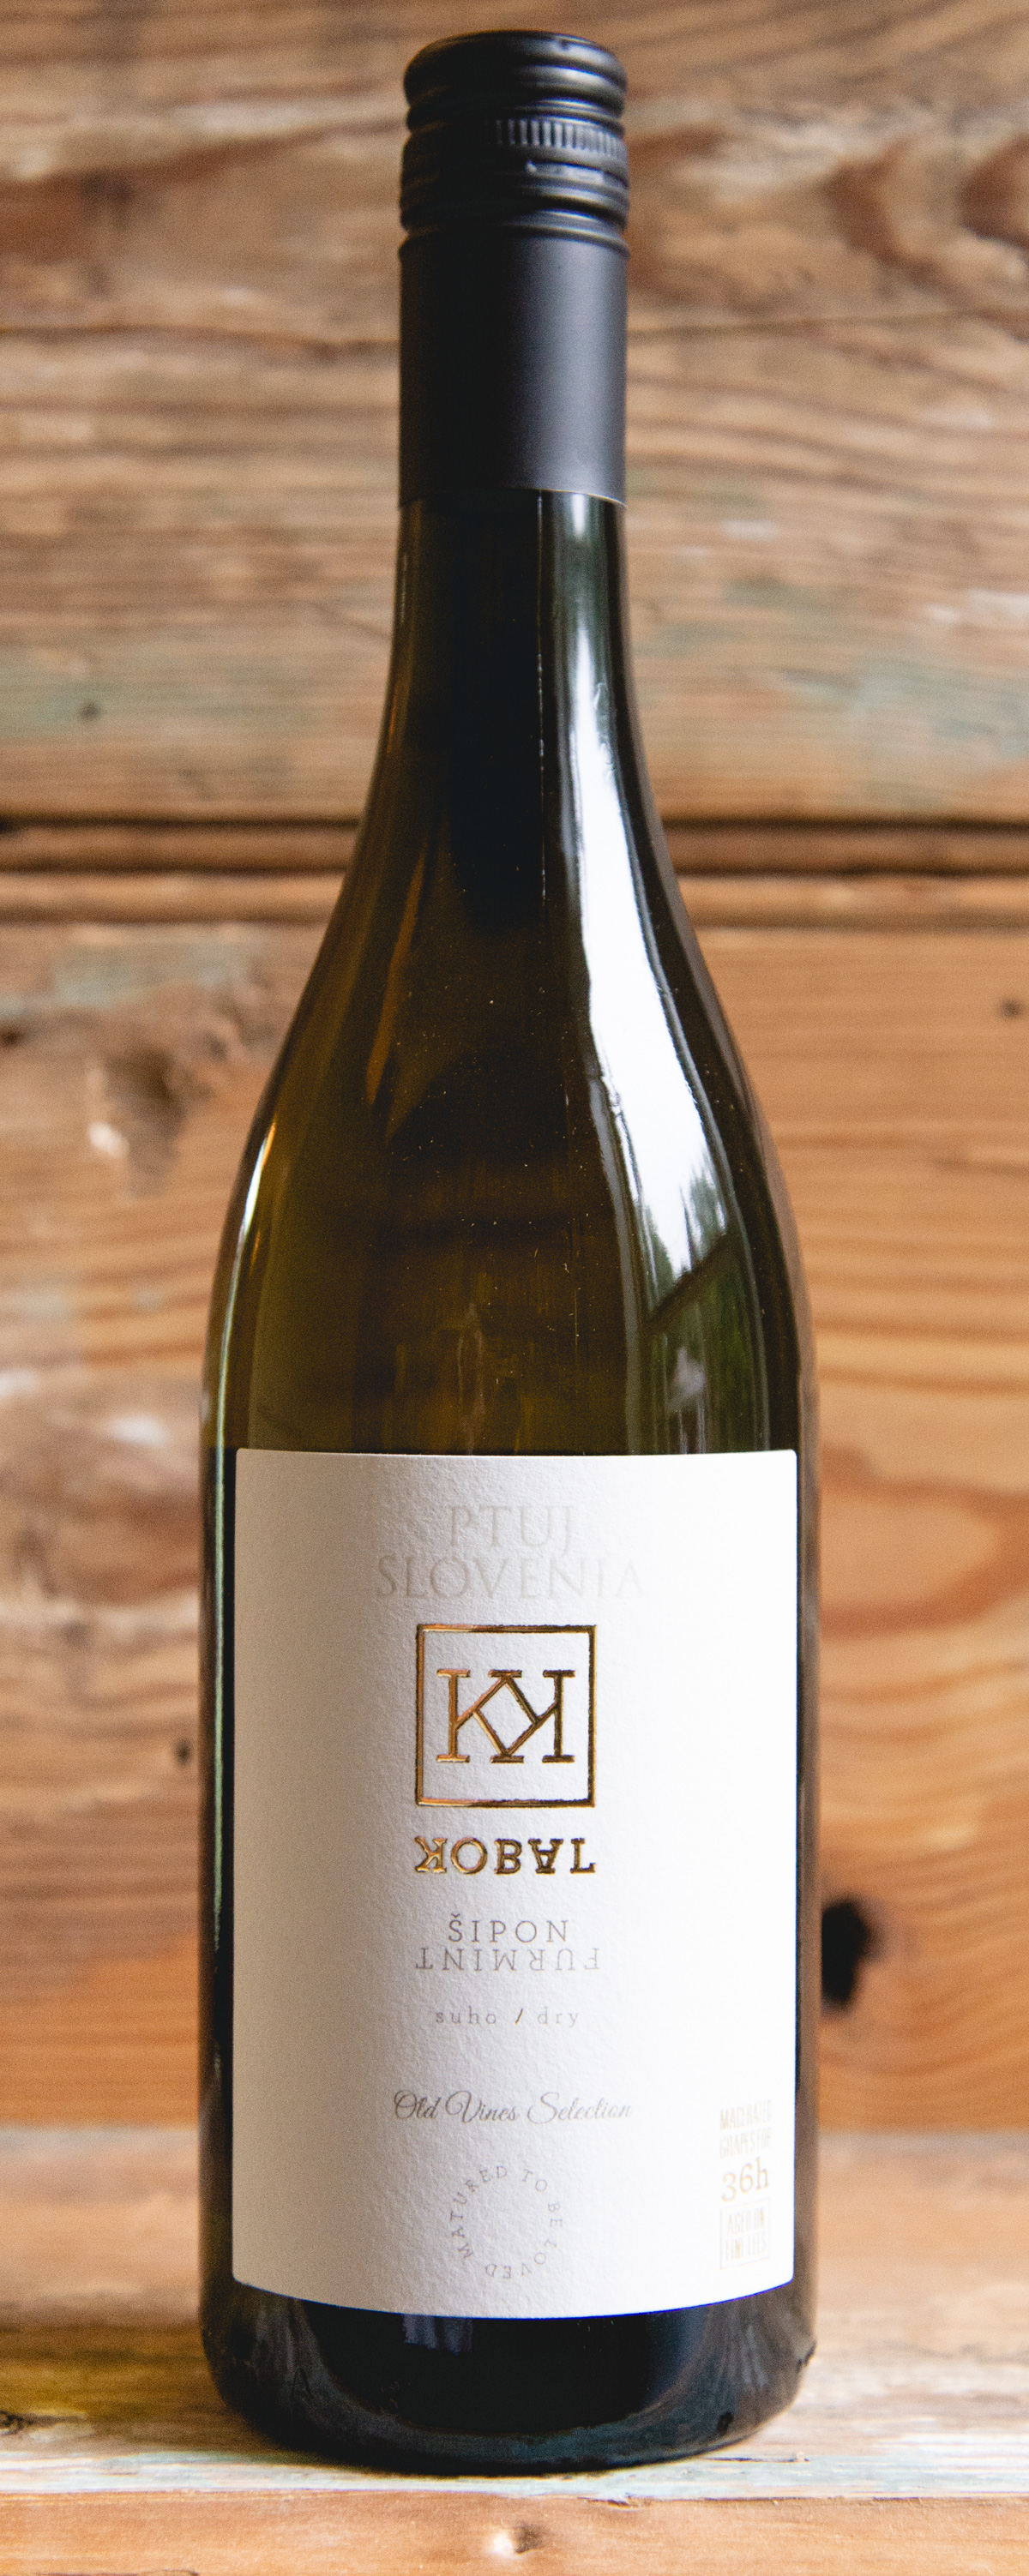 Kobal Furmint 2018 - Origin: SloveniaRetail: $20.95   Sale: $18.85Located in Posavje, Slovenia, the vineyards of Kobal are spread out over some of the finest winegrowing sites on the hills and slopes of the Bizeljsko-Sremic wine region. This area is a narrow strip along the northern bank of the Sava River, protected by the mountains from the harsh north winds and home to perhaps the best winegrowing conditions in the region. Kobal wines are produced from local grape varietals which are farmed in an environmentally-friendly manner. Aromas of citrus zest, white flowers and fresh apricot jump from the glass. The palate features an electric acidity and saline mineral profile highlighted by stone fruit, nuts and herbs. Enjoy with Locke cured meats or pork.Furmint